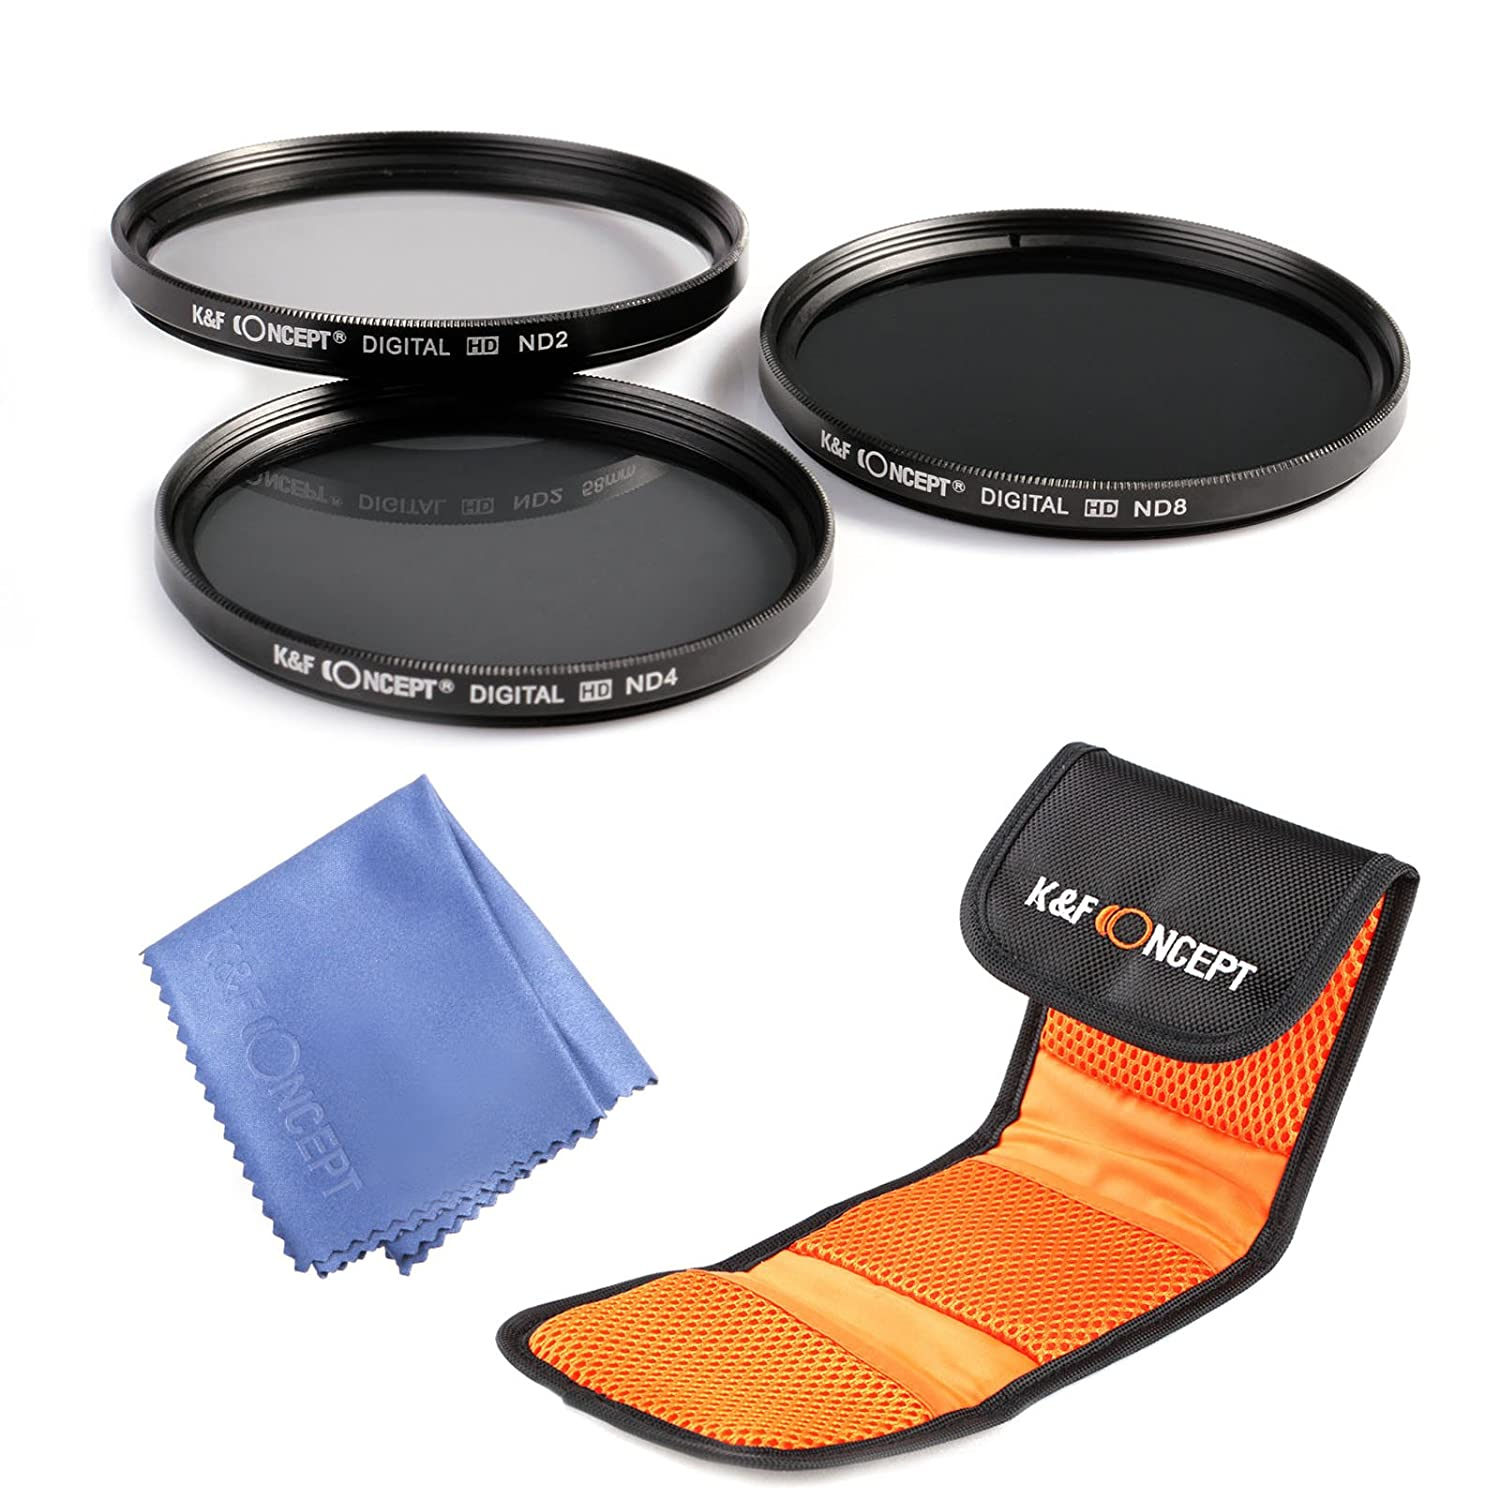 62MM ND Filter Kit K&F Concept 62mm ND2 ND4 ND8 Neutral Density ND Filters Set For Sigma 18-200mm f/3.5-6.3 II DC 18-250mm 70-300mm 28-300mm 18-125mm Lens + Cleaning Cloth + Shockproof Filter Bag Shenzhen Zhuoer Photograph AMSKU0043